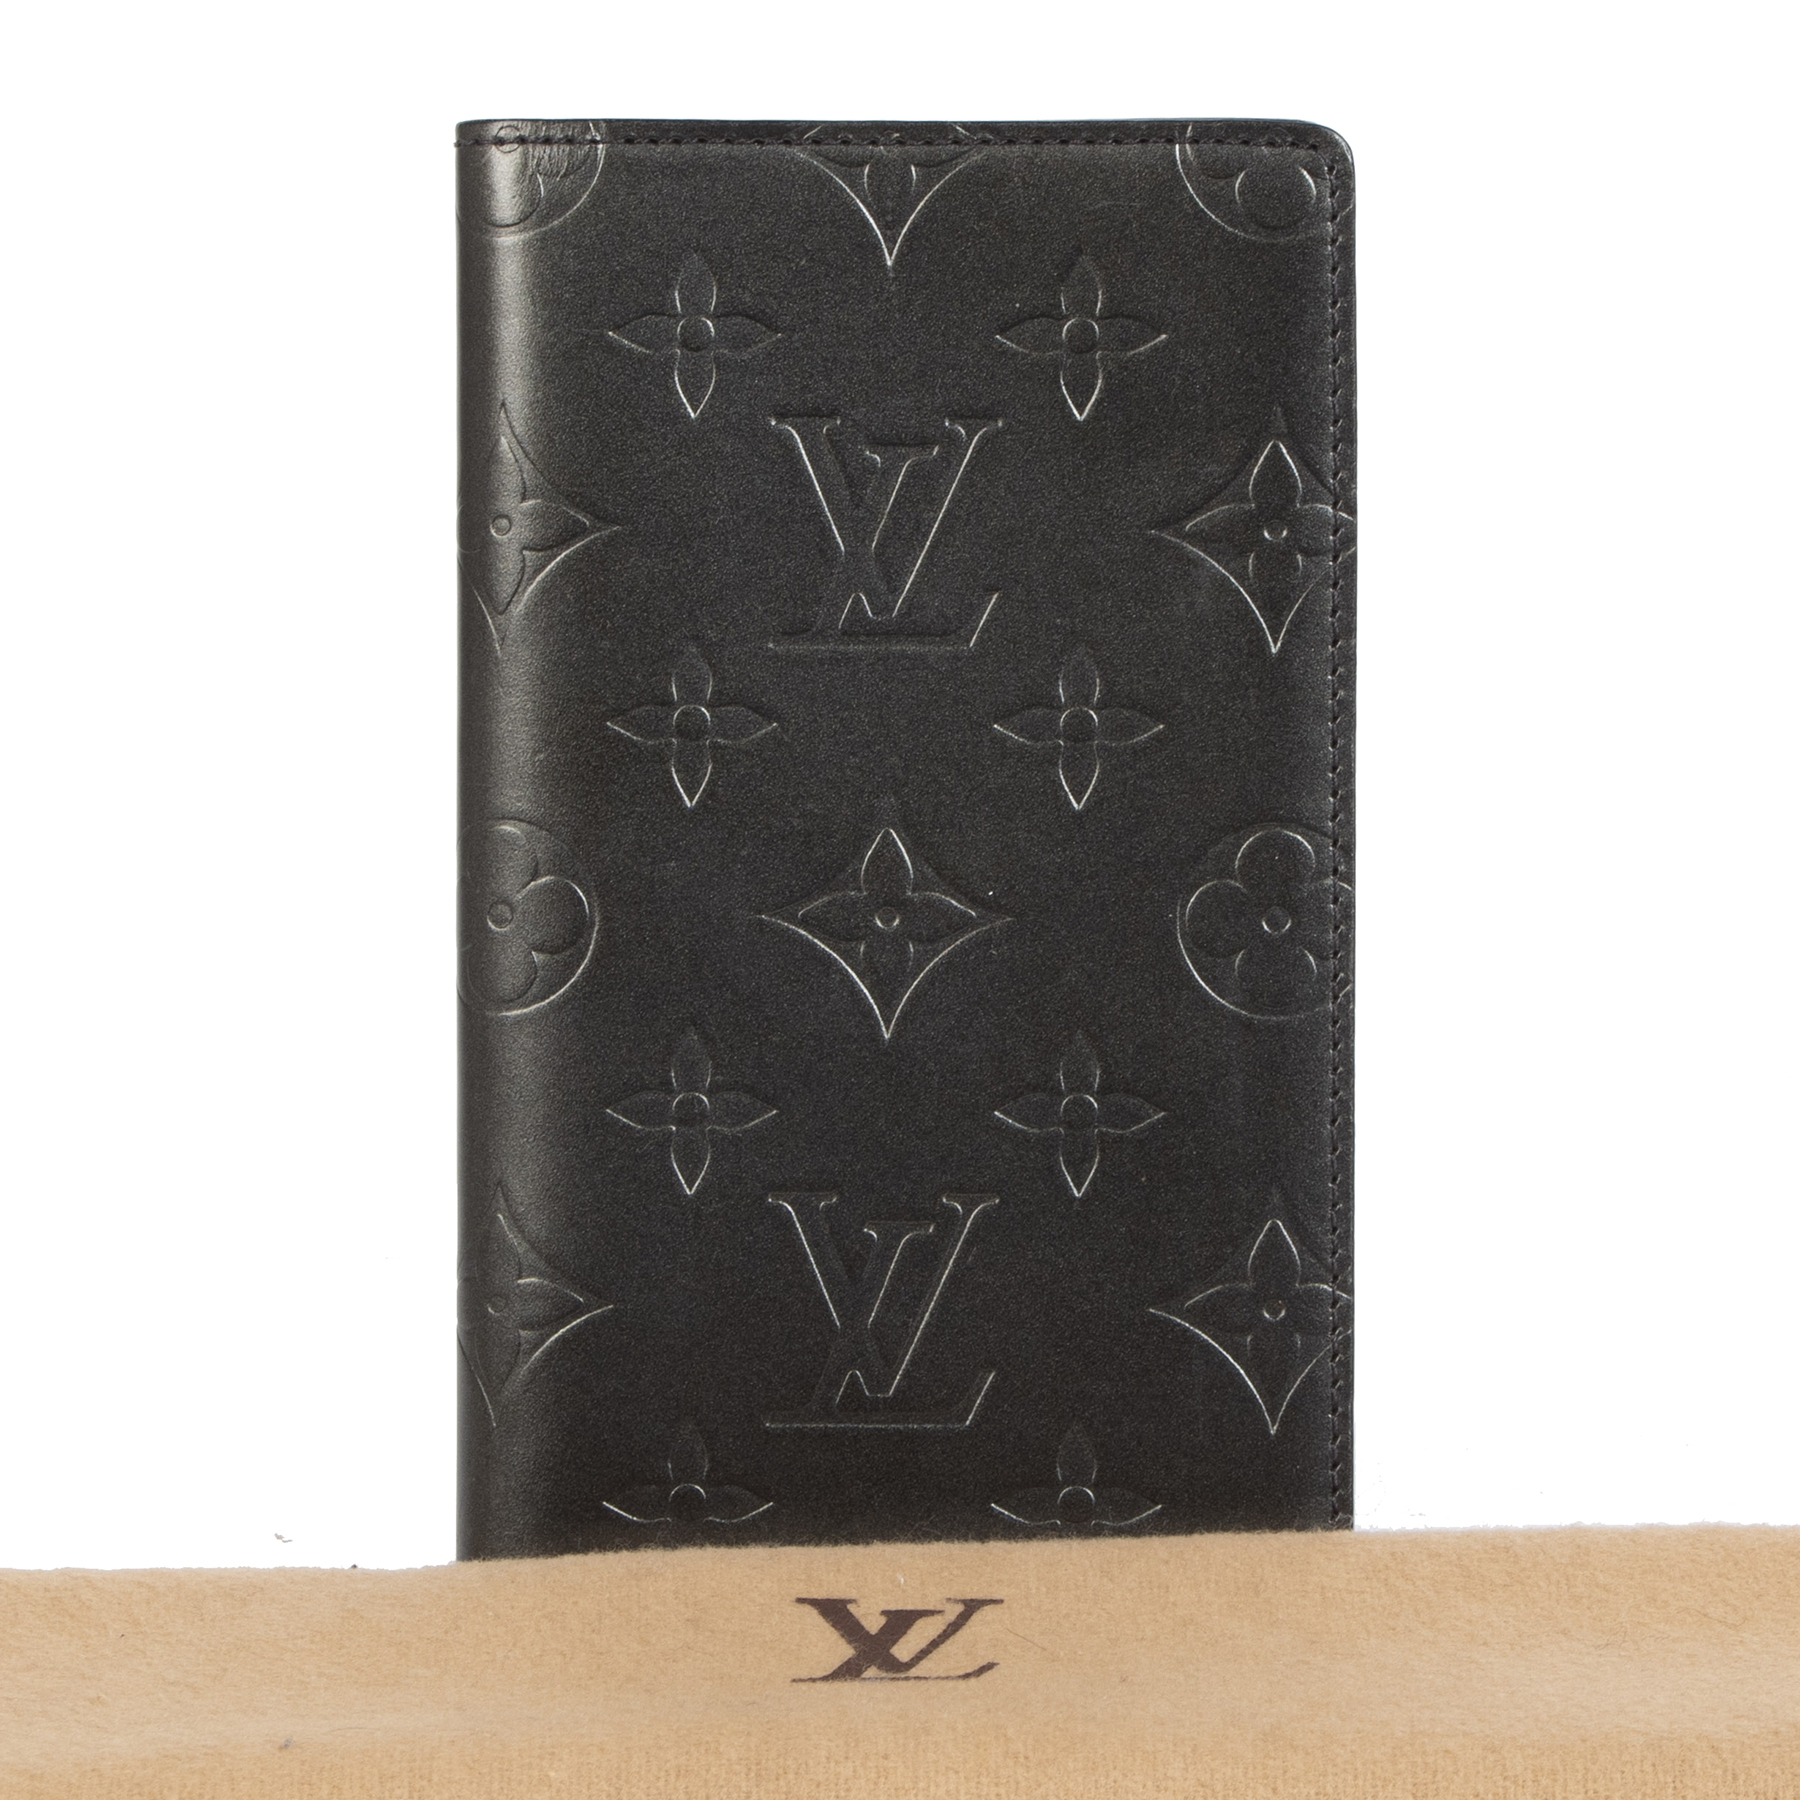 Authentic second-hand vintage Louis Vuitton Monogram Checkbook buy online webshop LabelLOV